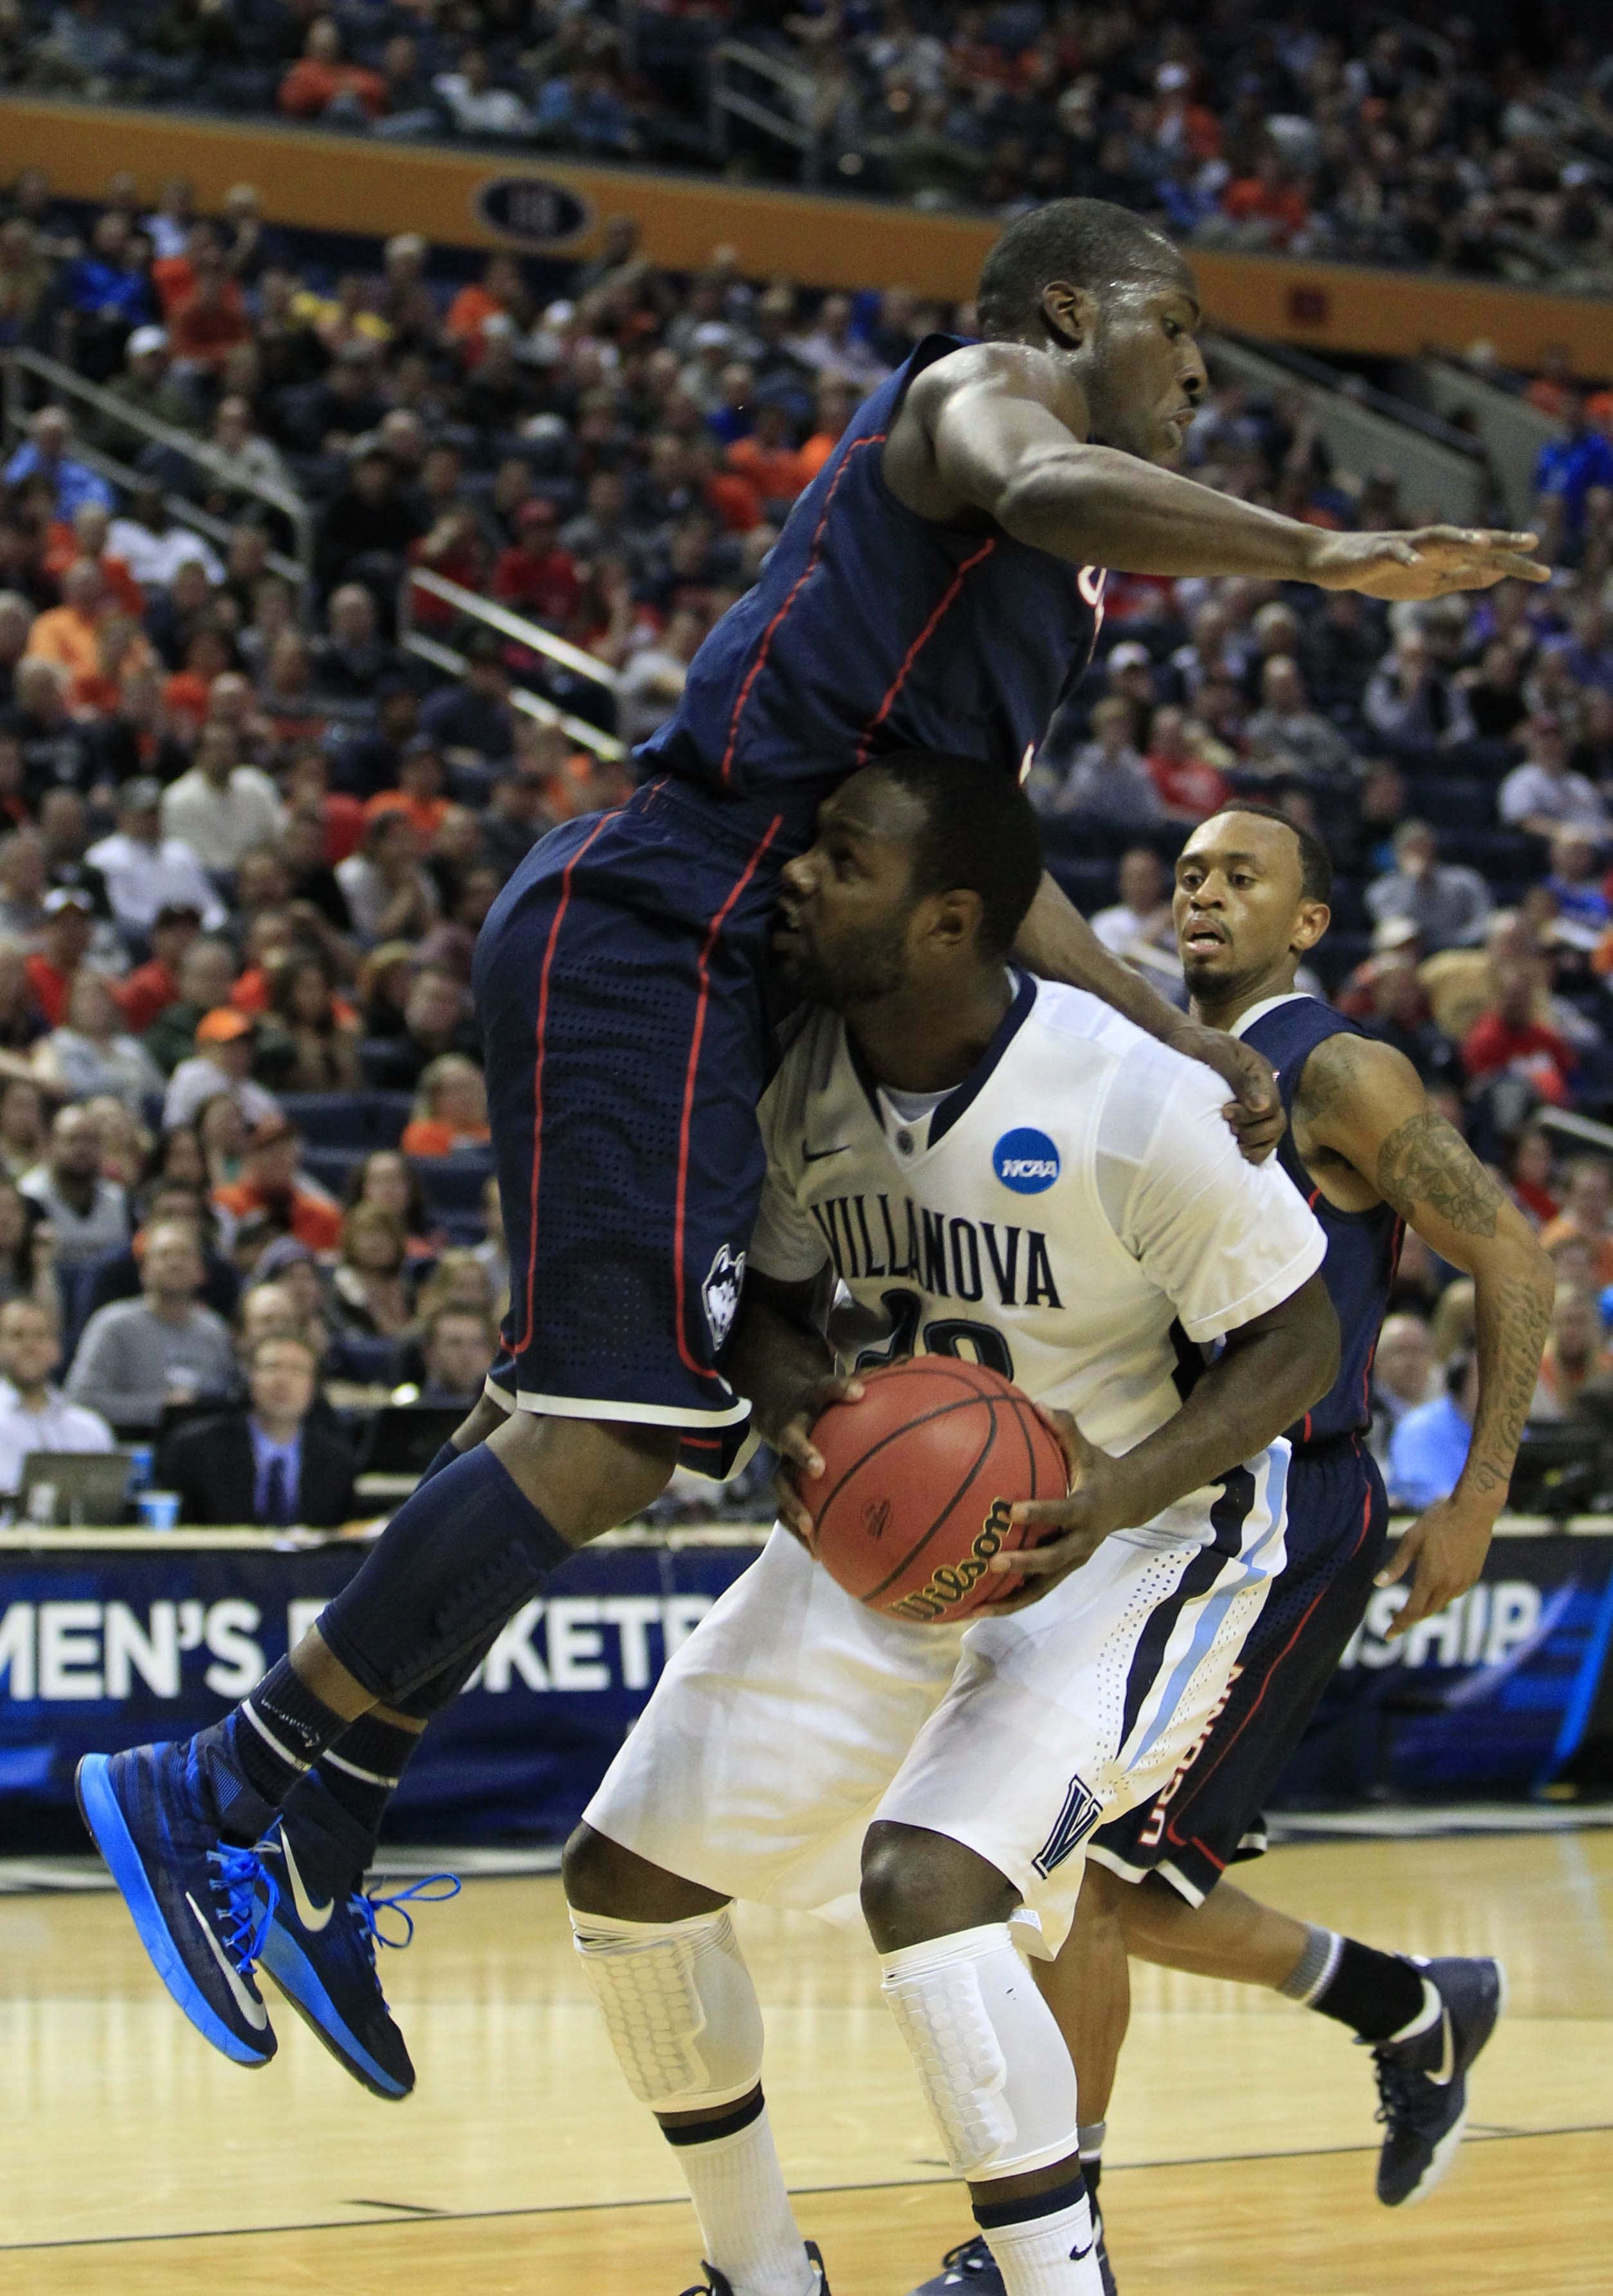 Villanova's JayVaughn Pinkston (22) is fouled by UConn's Terrence Samuel (3) during the first half of their third-round game at the First Niagara Center on Saturday.